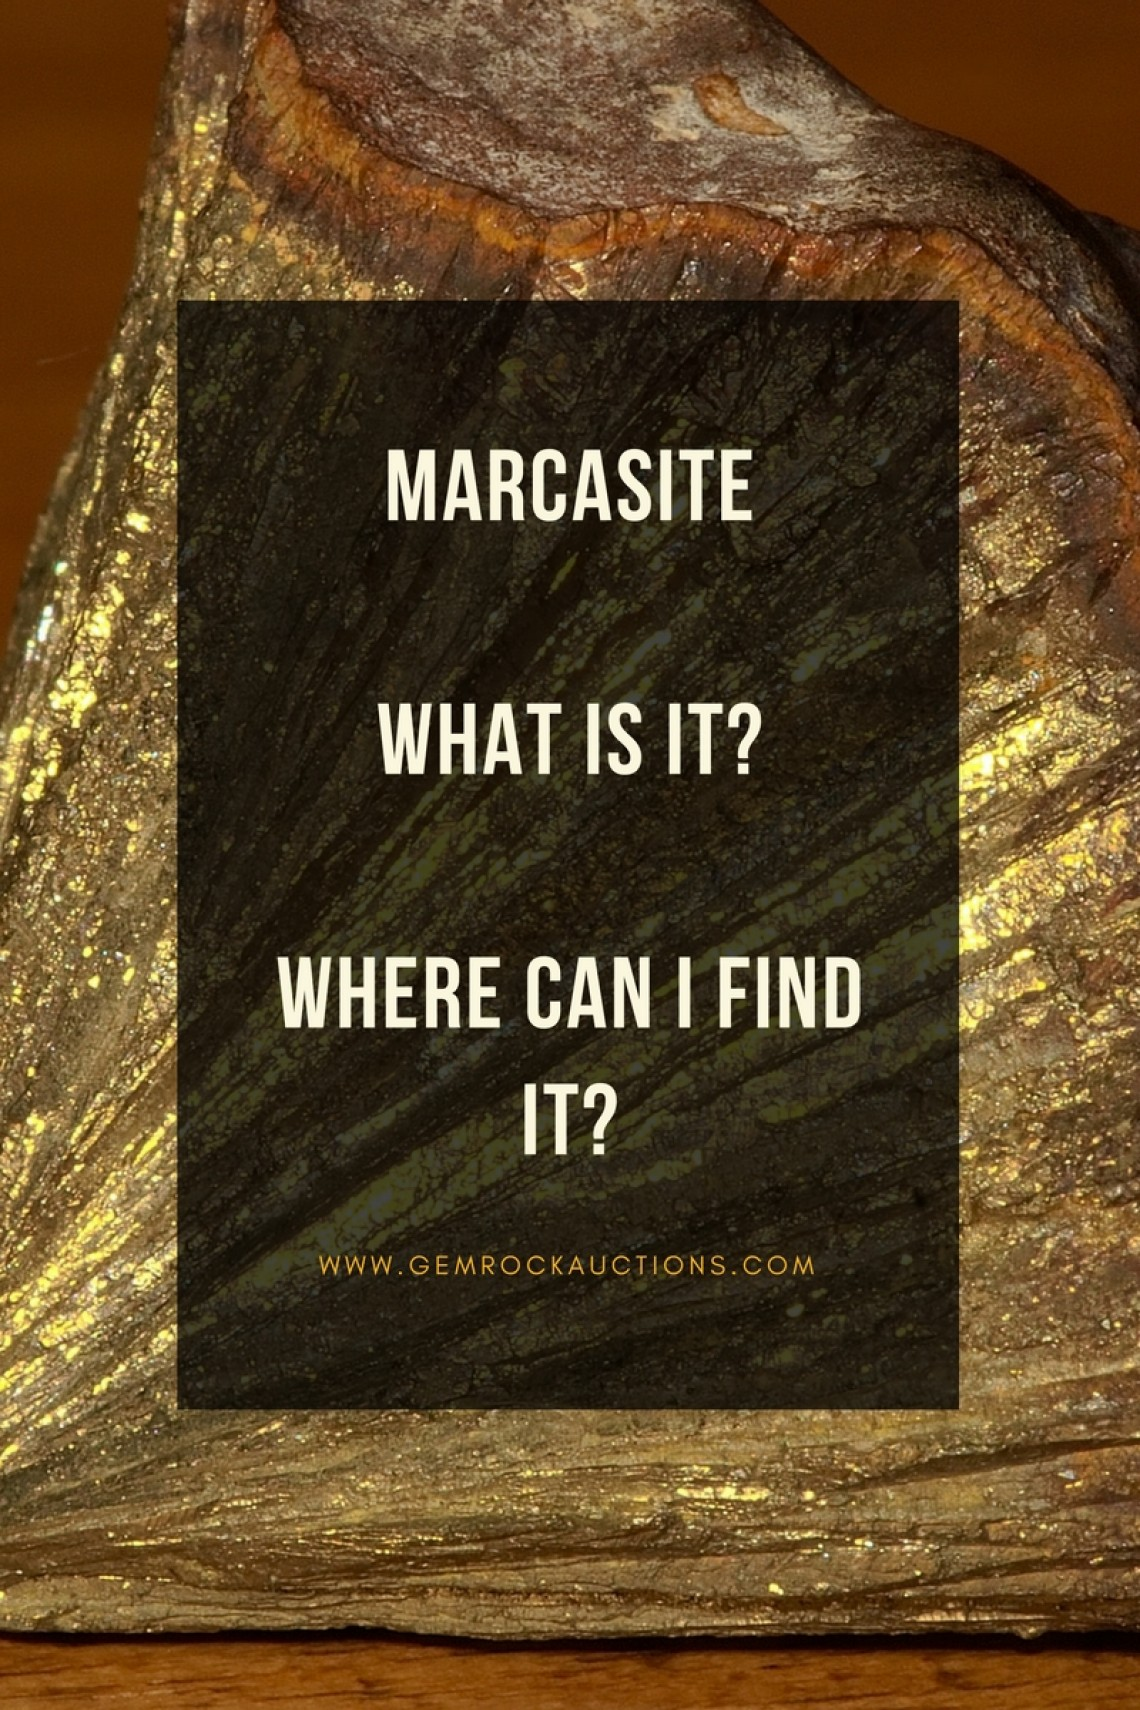 Marcasite mineral and uses